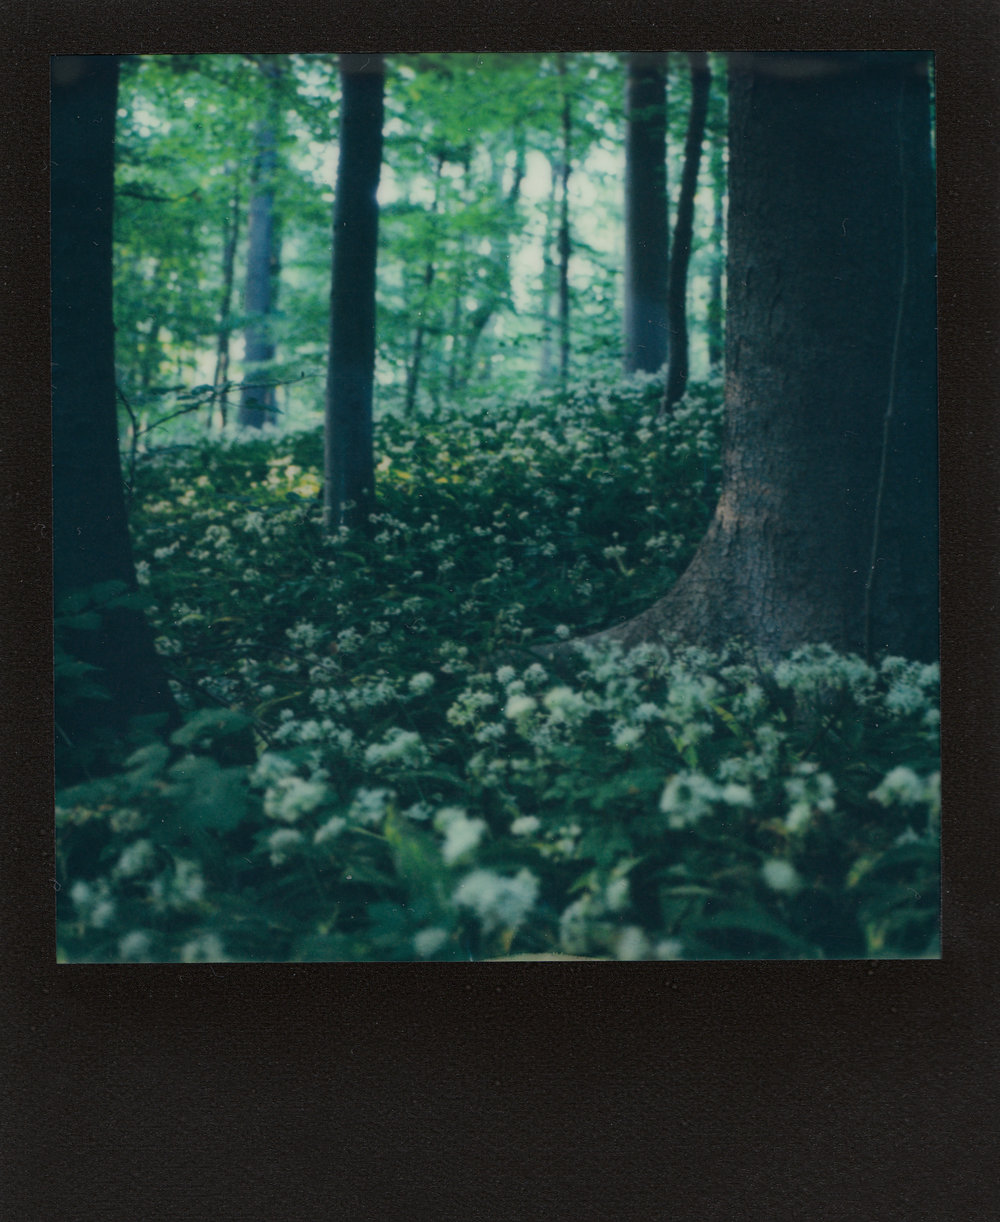 Something Out Of A Fairytale | Polaroid Land Camera SX-70 | Impossible Project Expired 600 | Ioana Taut